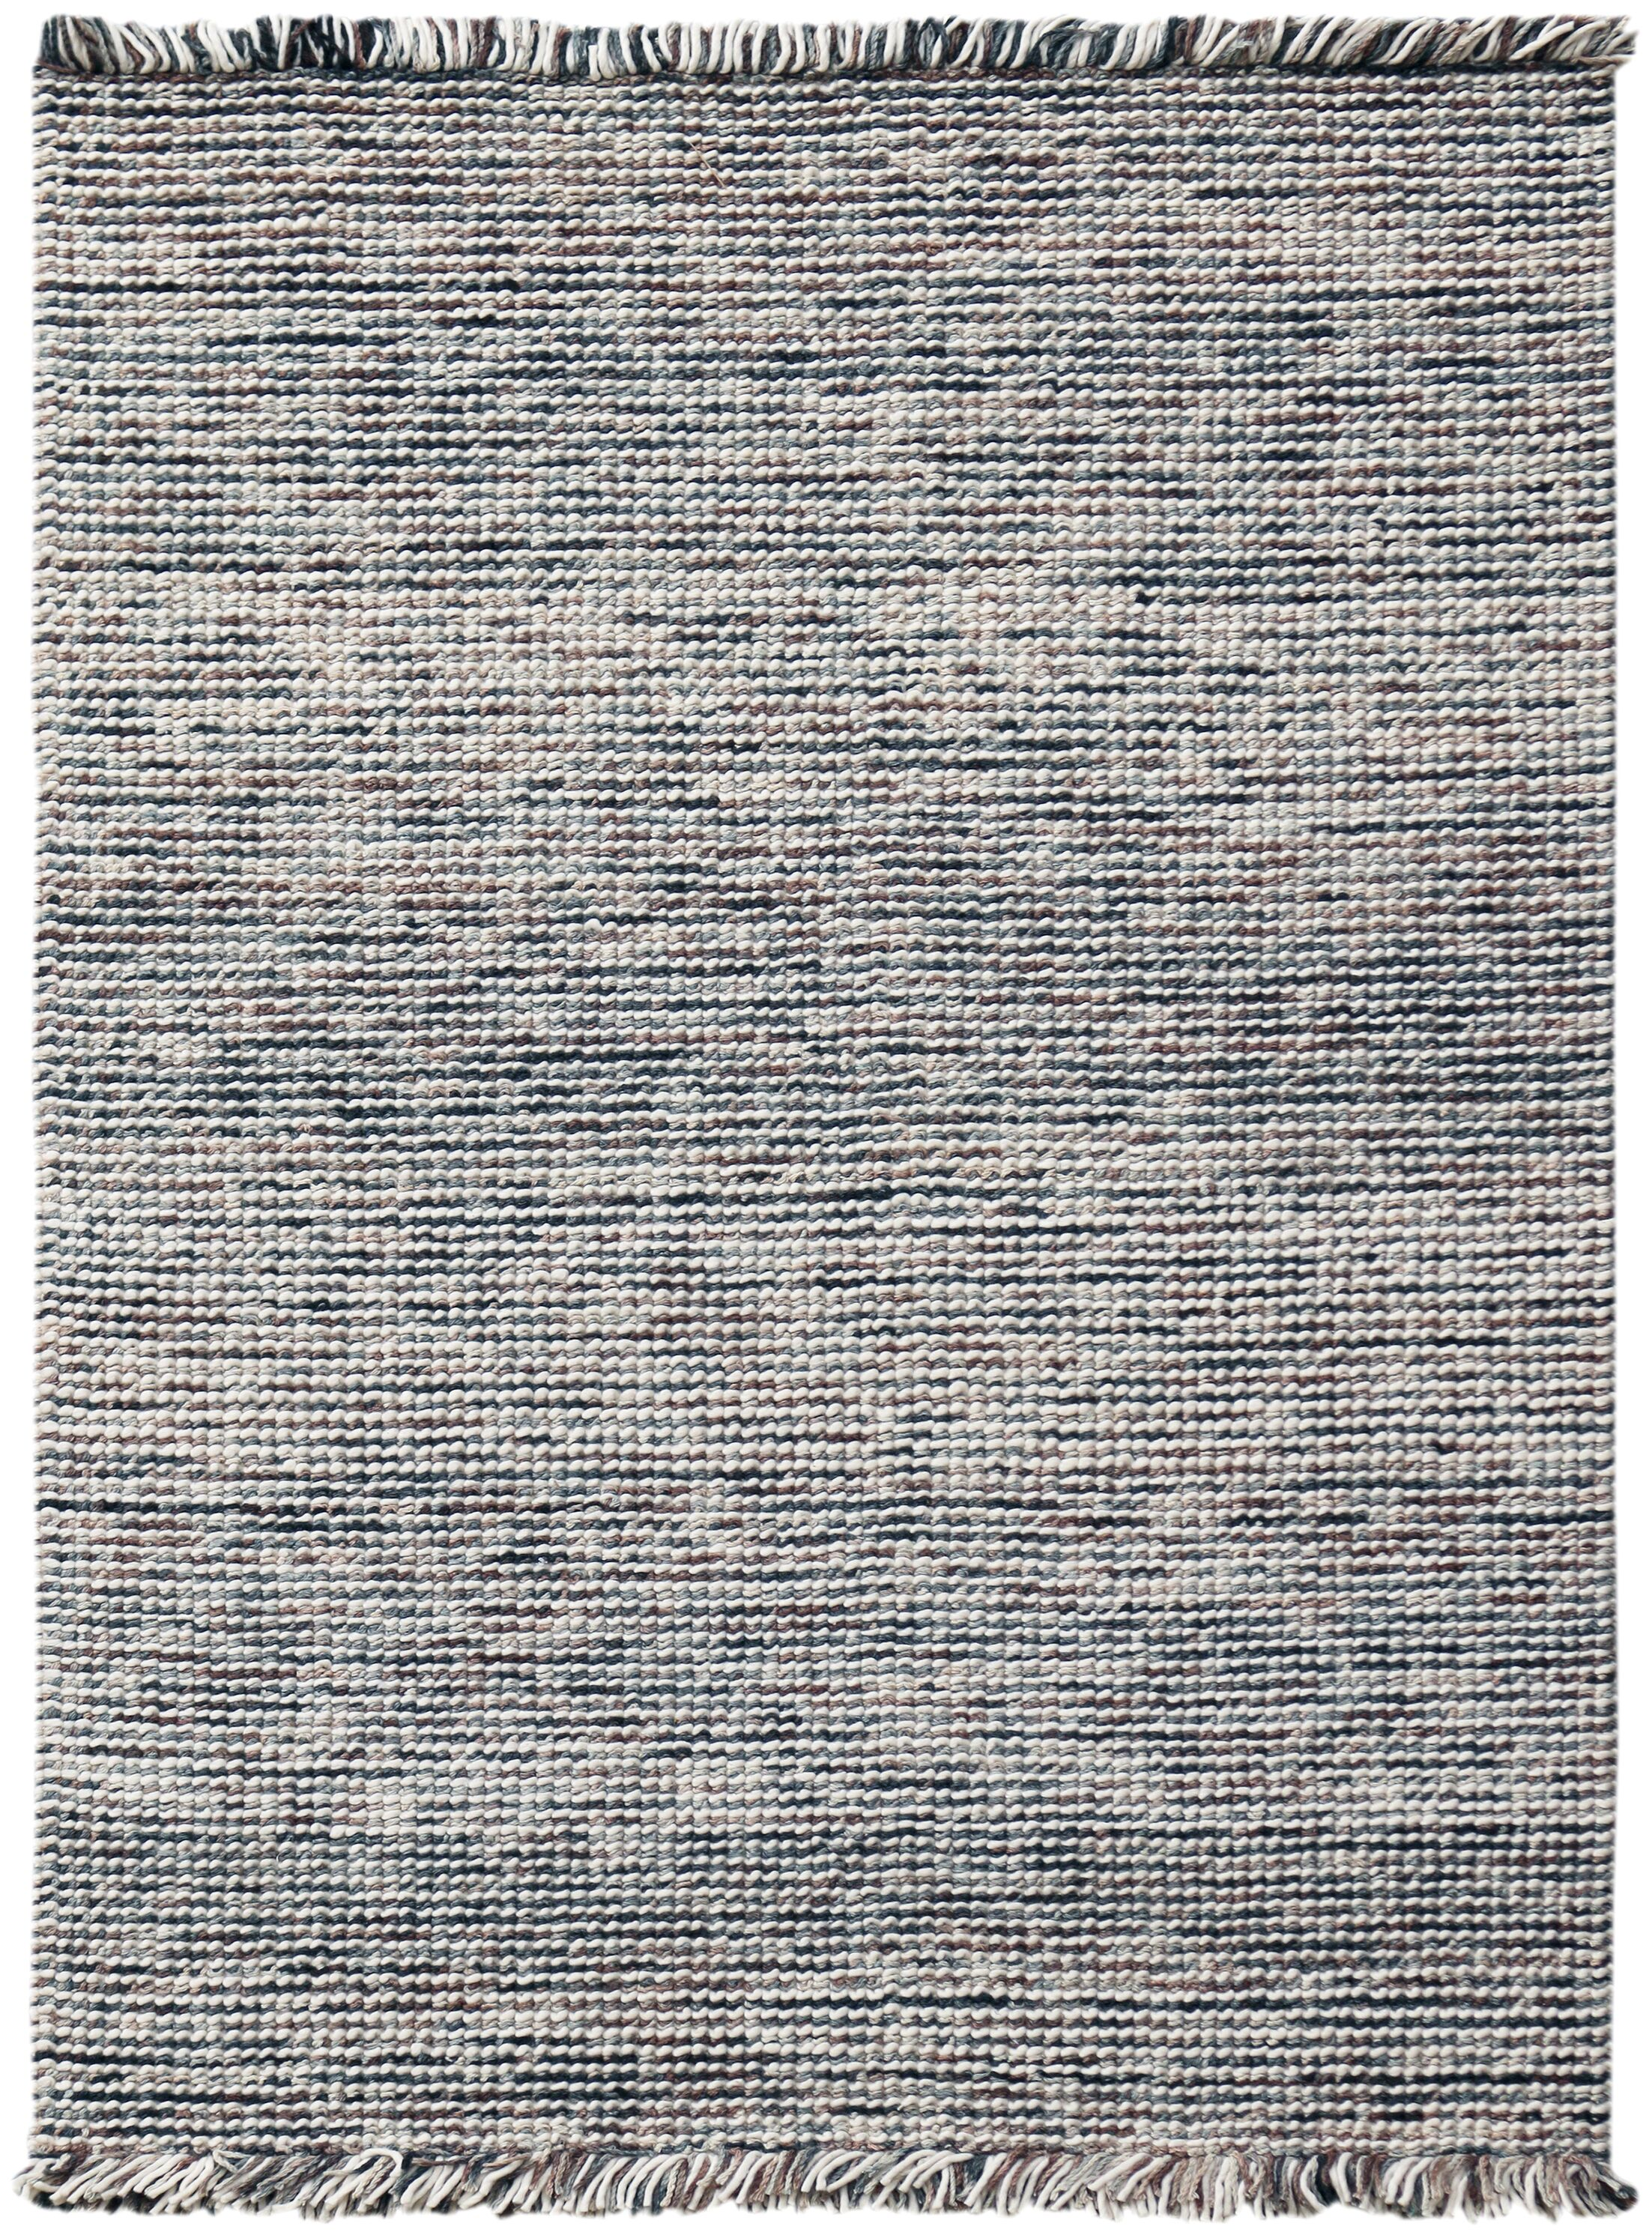 Louth Casual Handwoven Wool/Cotton Gray Area Rug Rug Size: Rectangle 3' x 5'